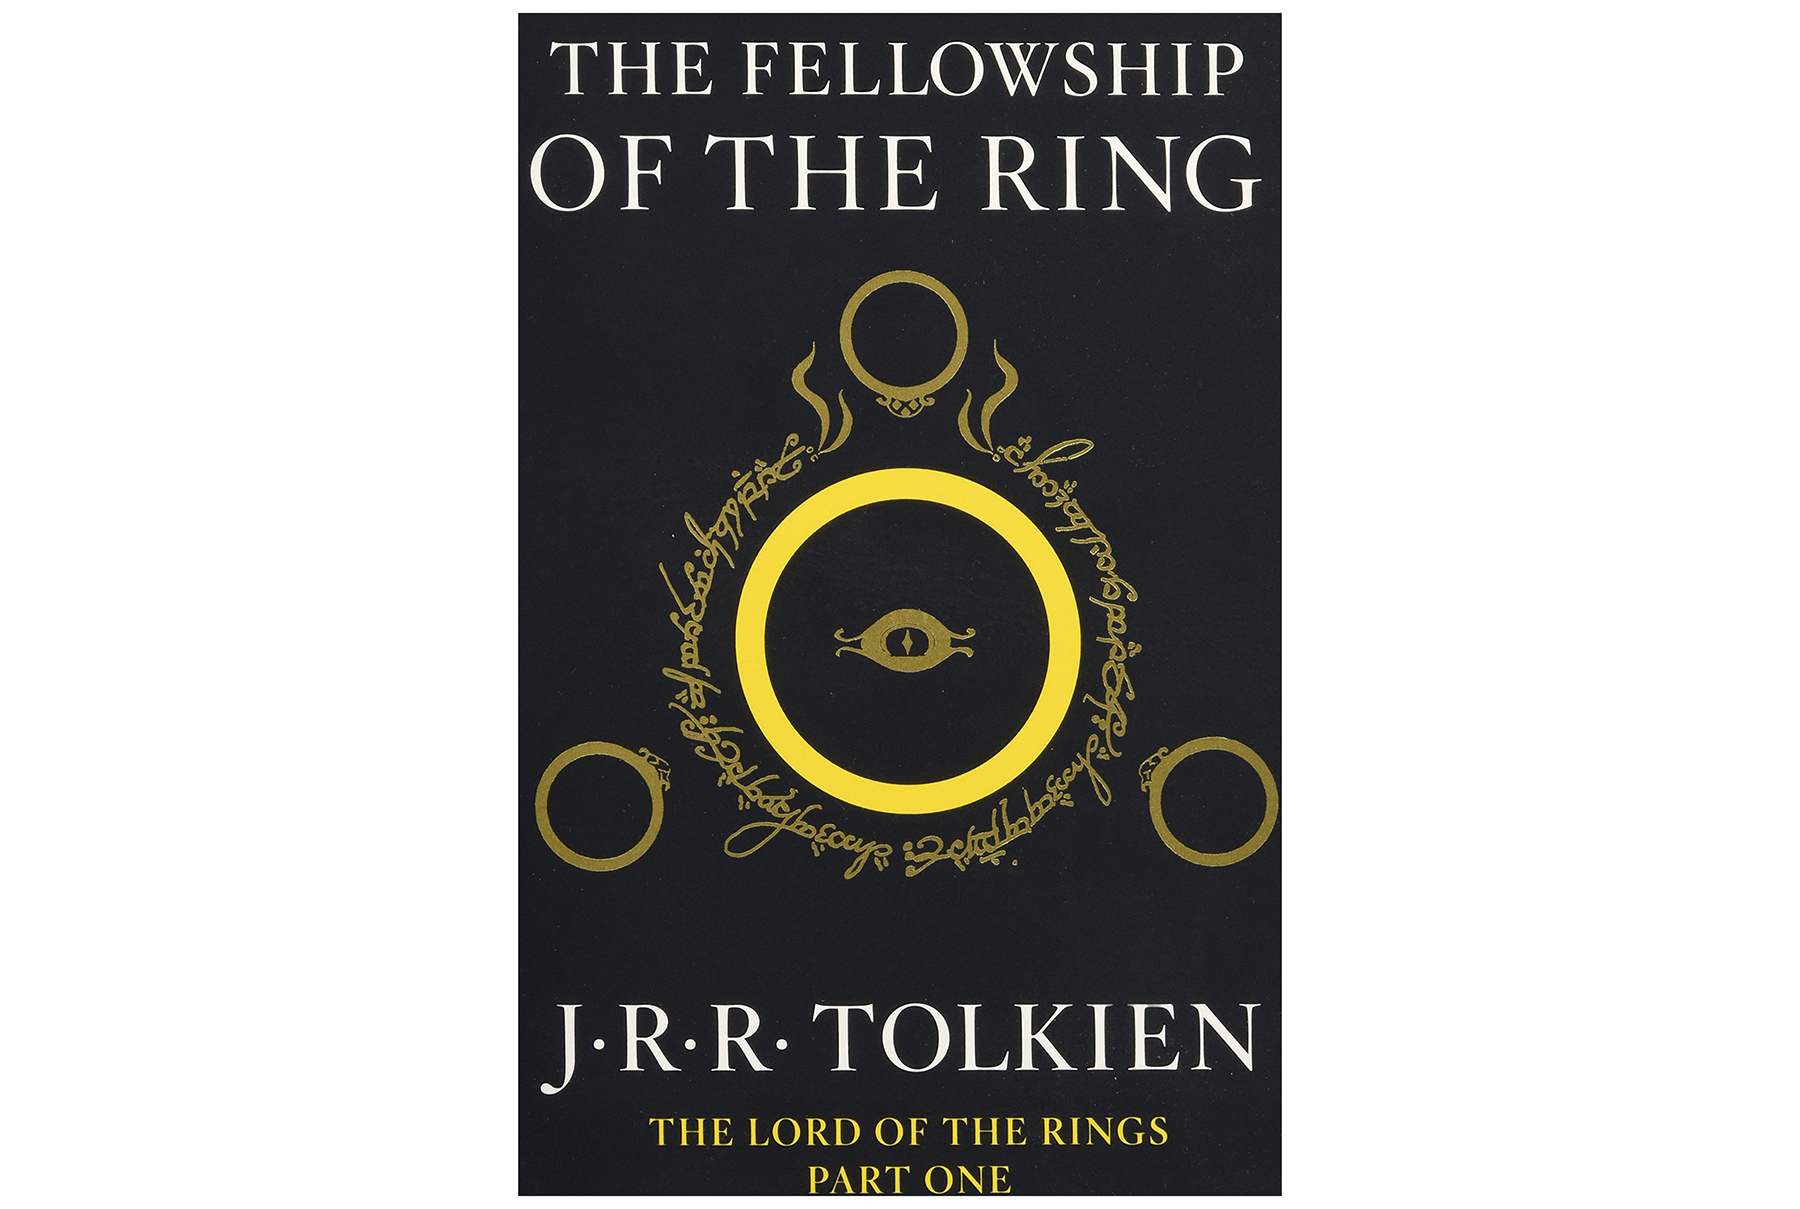 The Lord of the Rings: The Fellowship of the Ring, by J.R.R. Tolkien